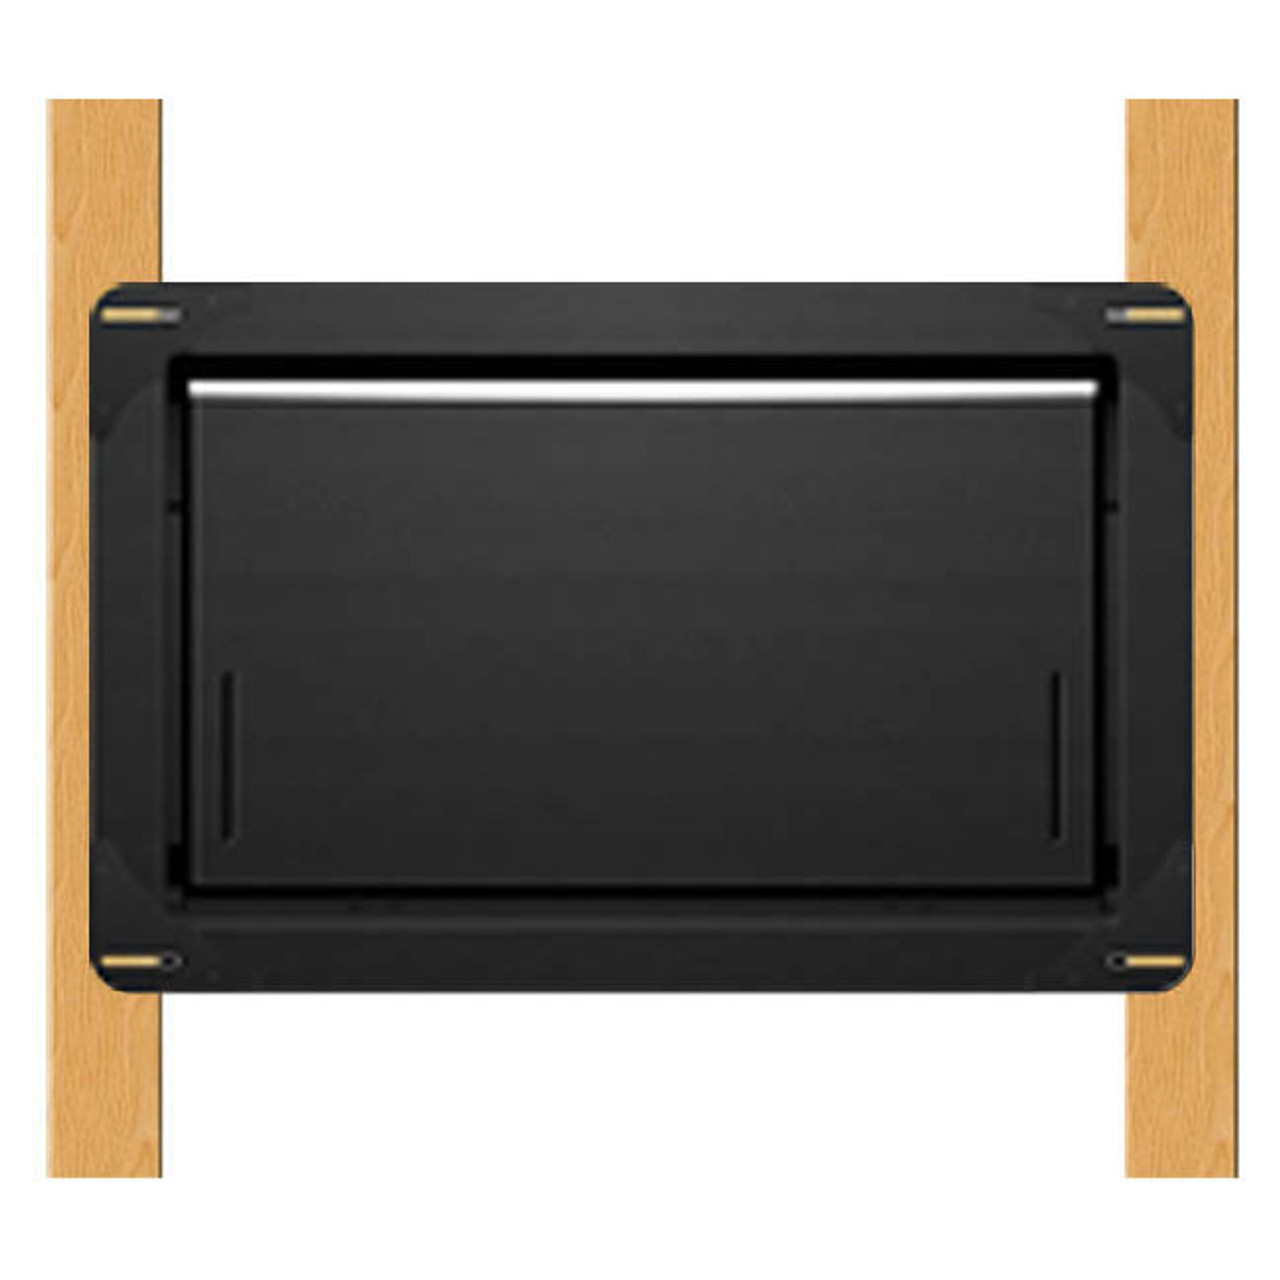 Smart Vent 1540-570 Wood Wall Insulated Flood Vent, Powder Coated Black